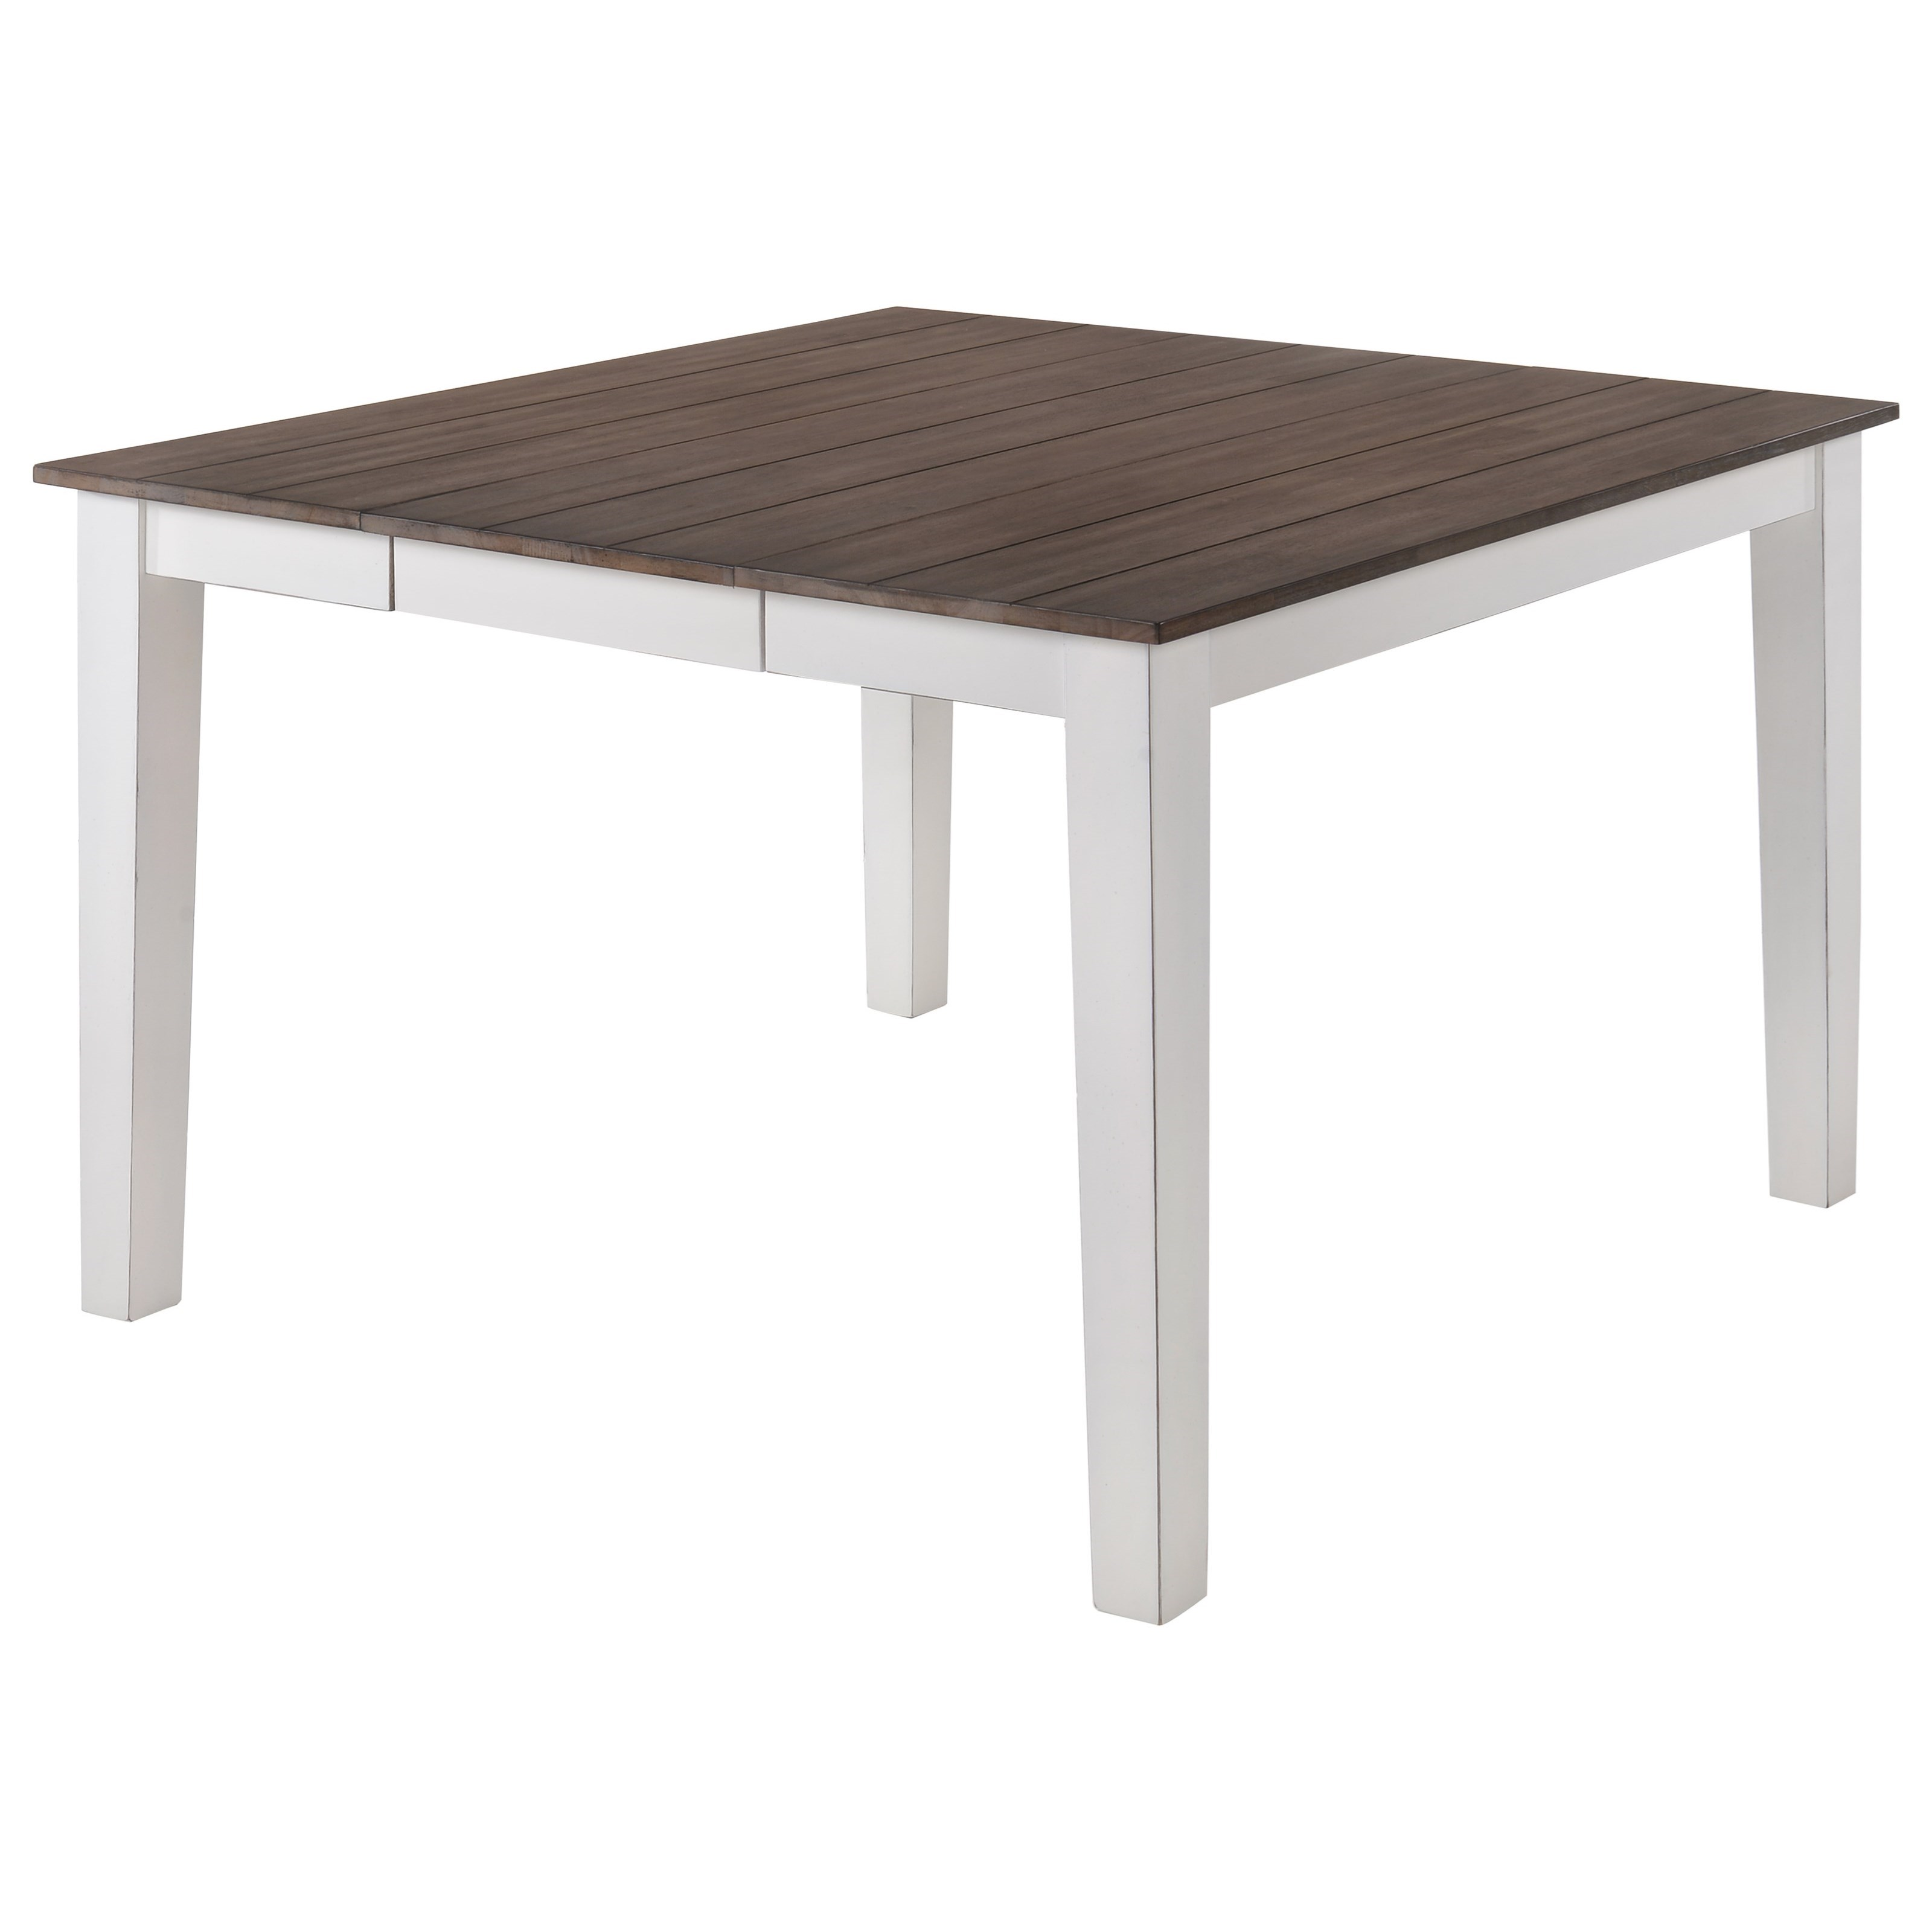 5057 Counter Height Square Dining Table by Lane at Powell's Furniture and Mattress